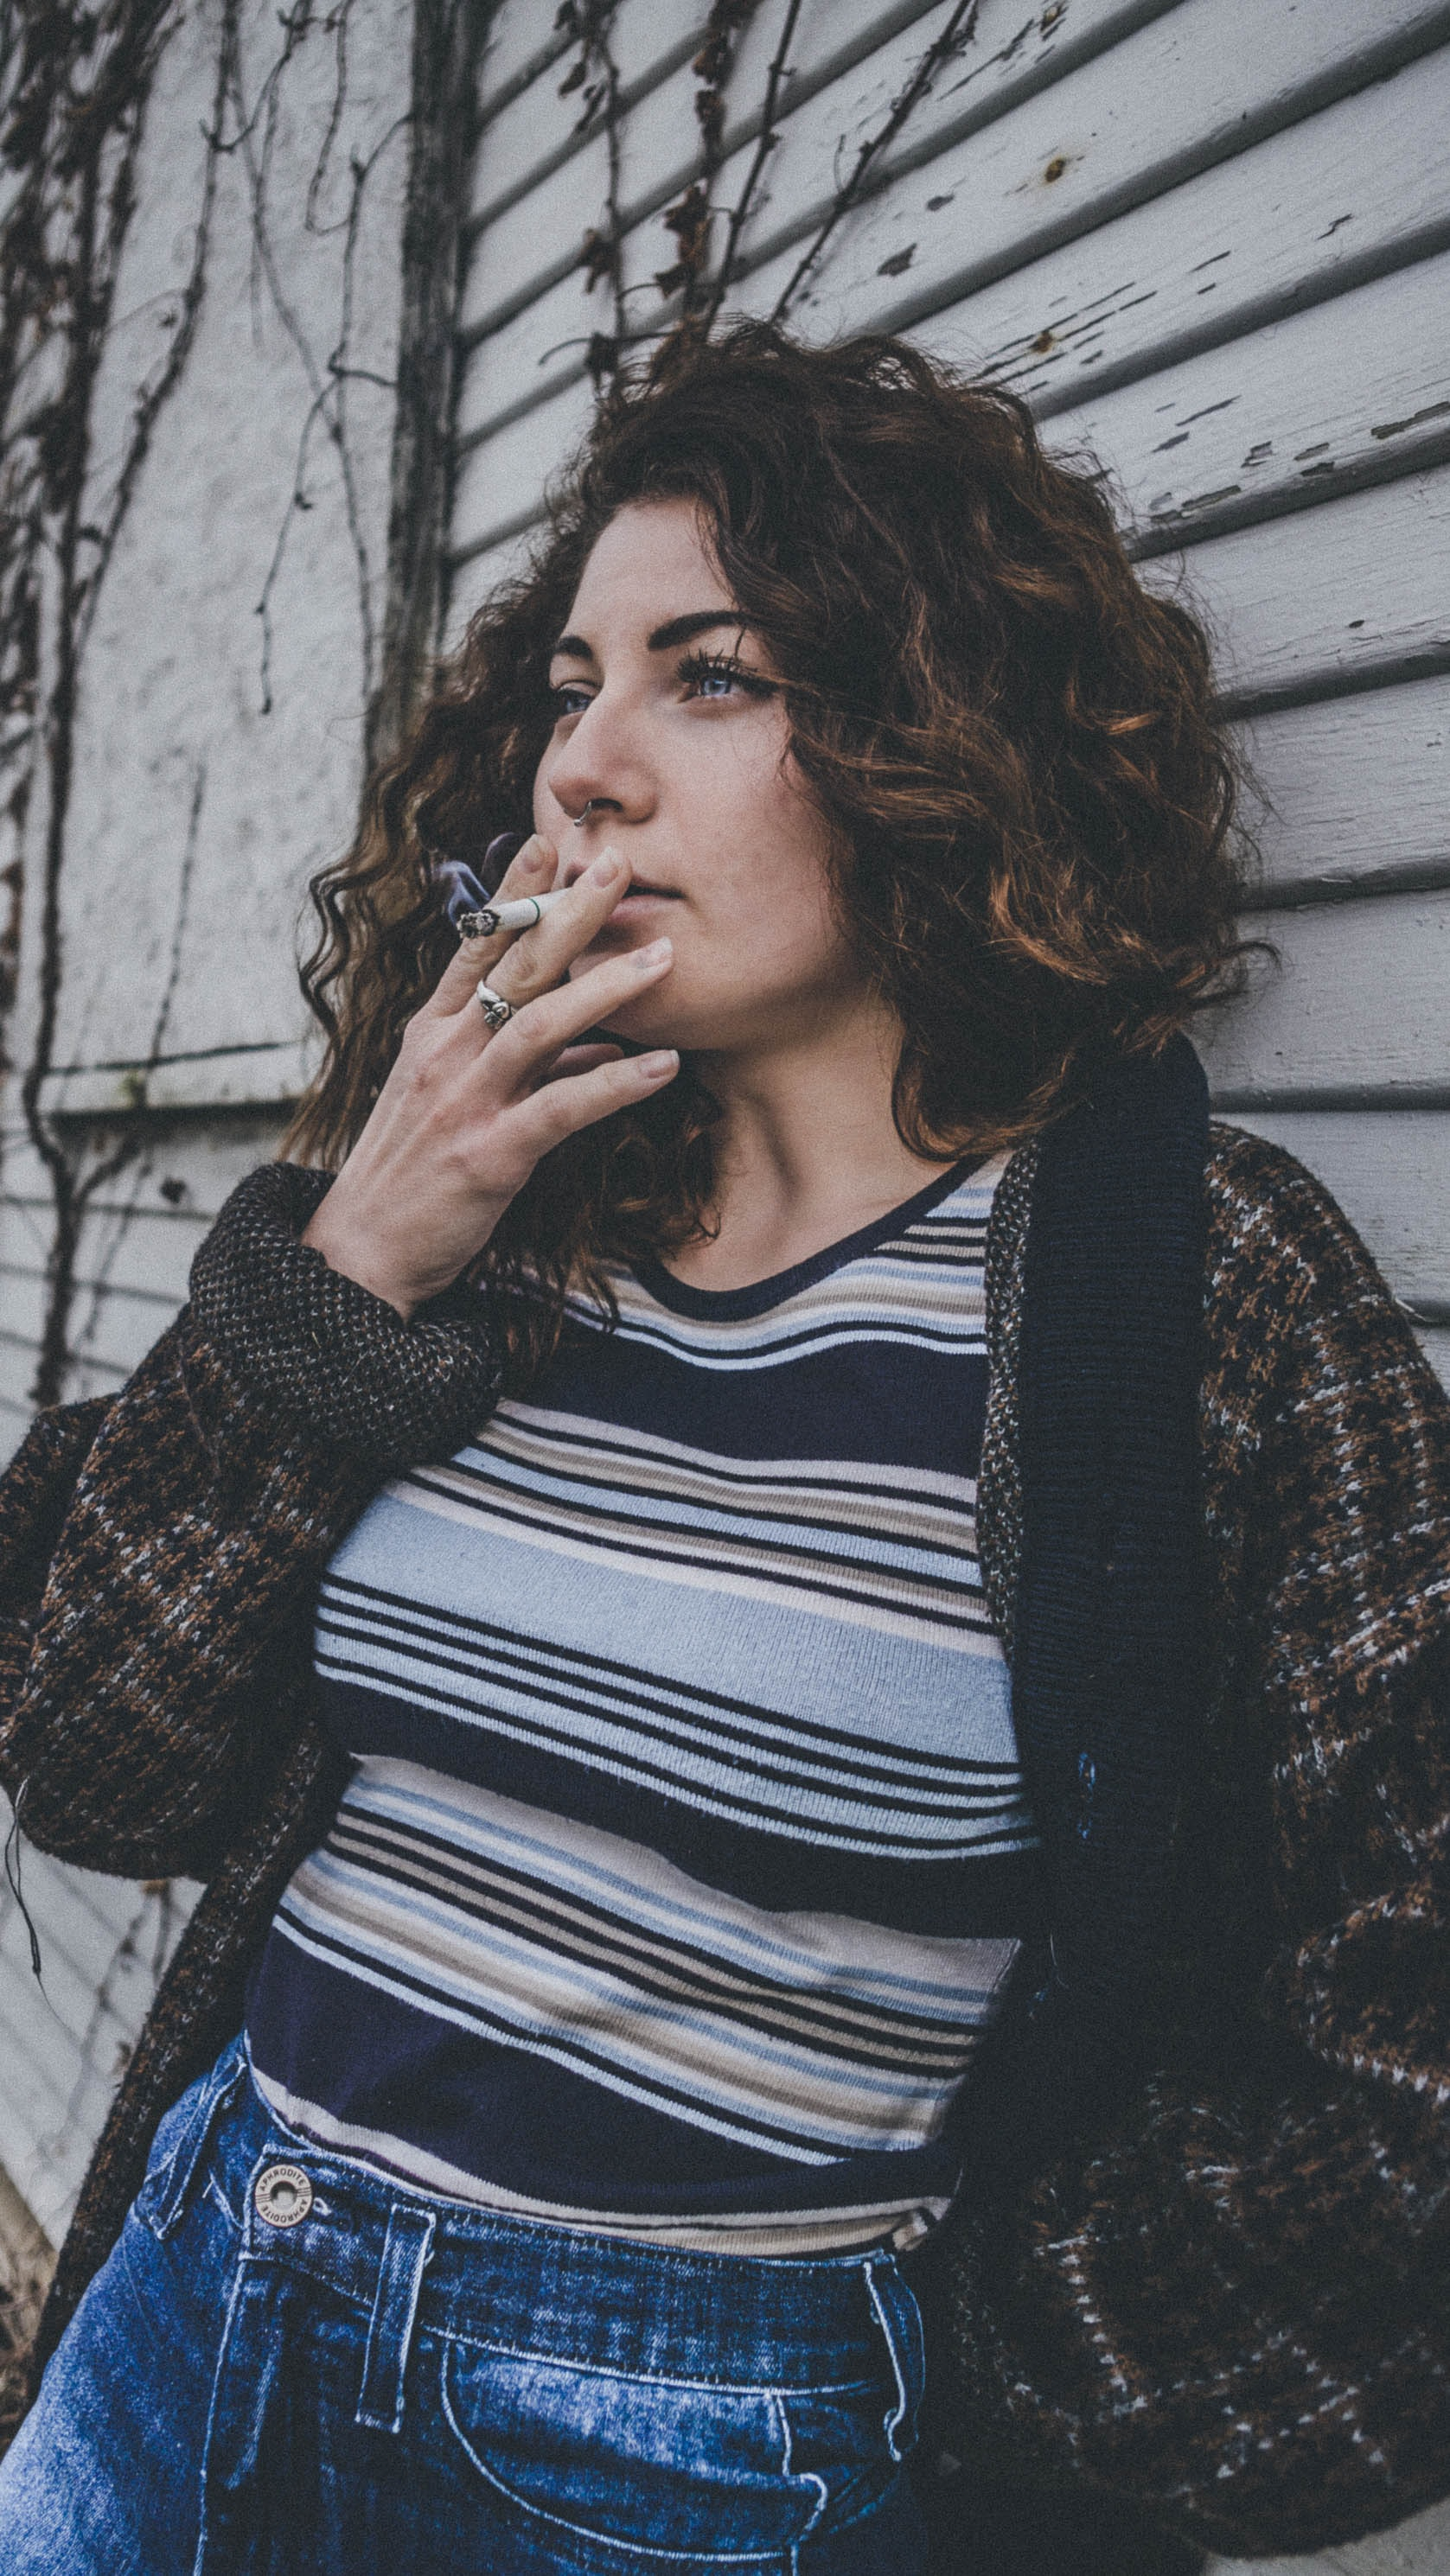 woman in brown and black jacket using cigarette